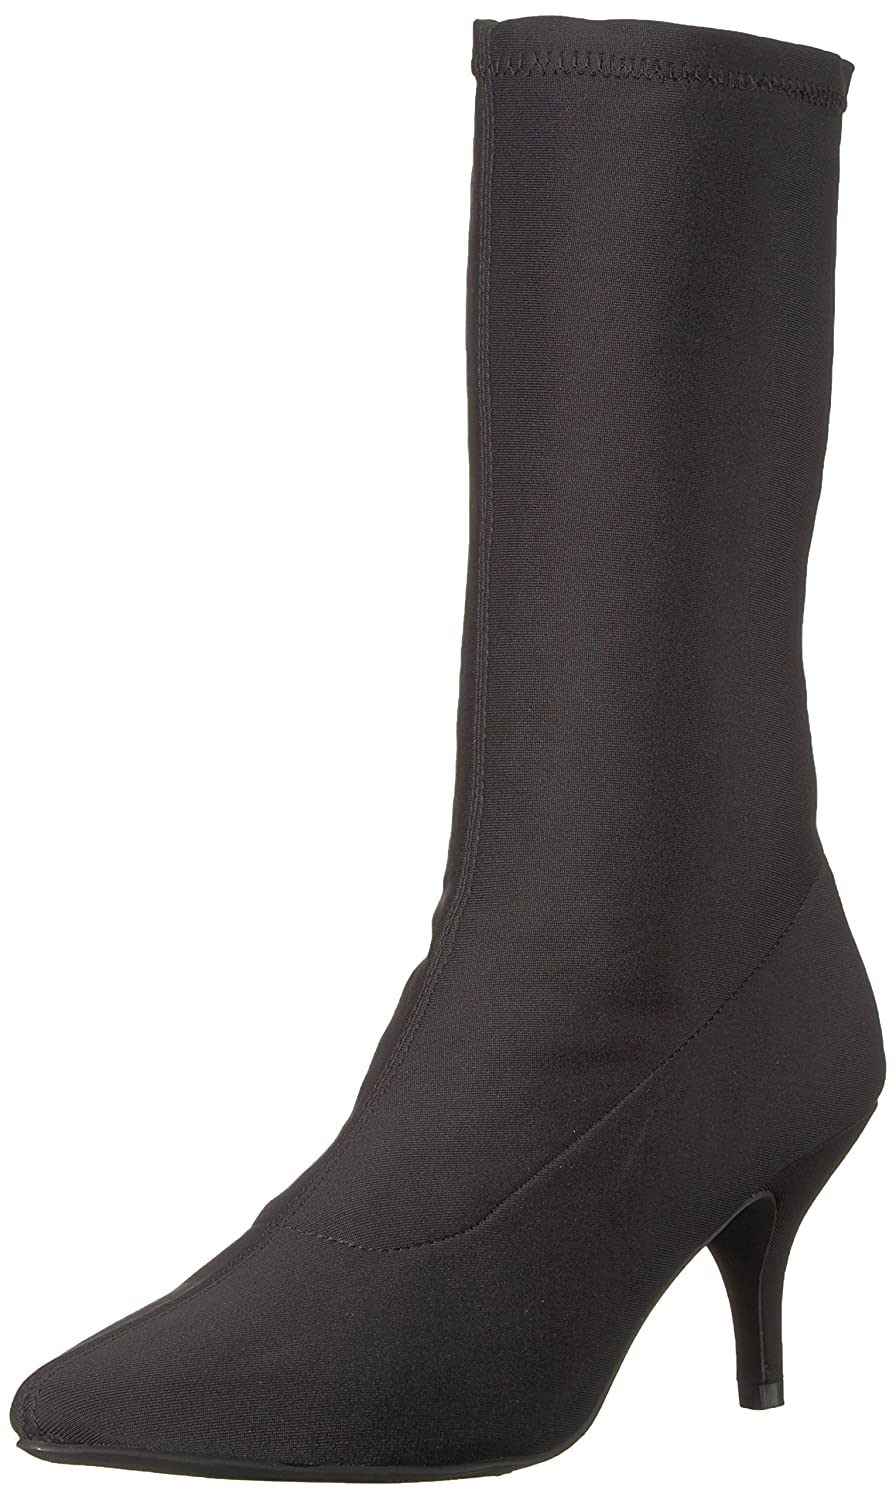 MIA Women's Camilla Fashion Boot B074P3YX7F 8 B(M) US|Black